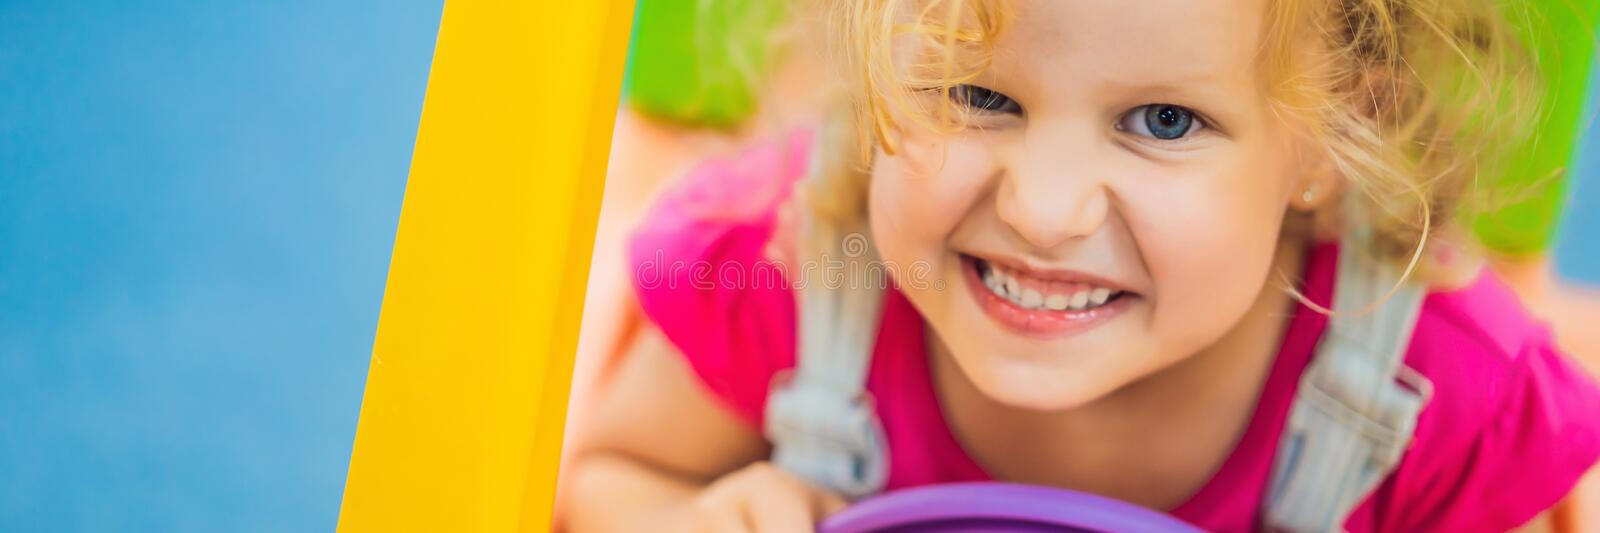 Little girl rides a toy colorful car BANNER, LONG FORMAT stock photography